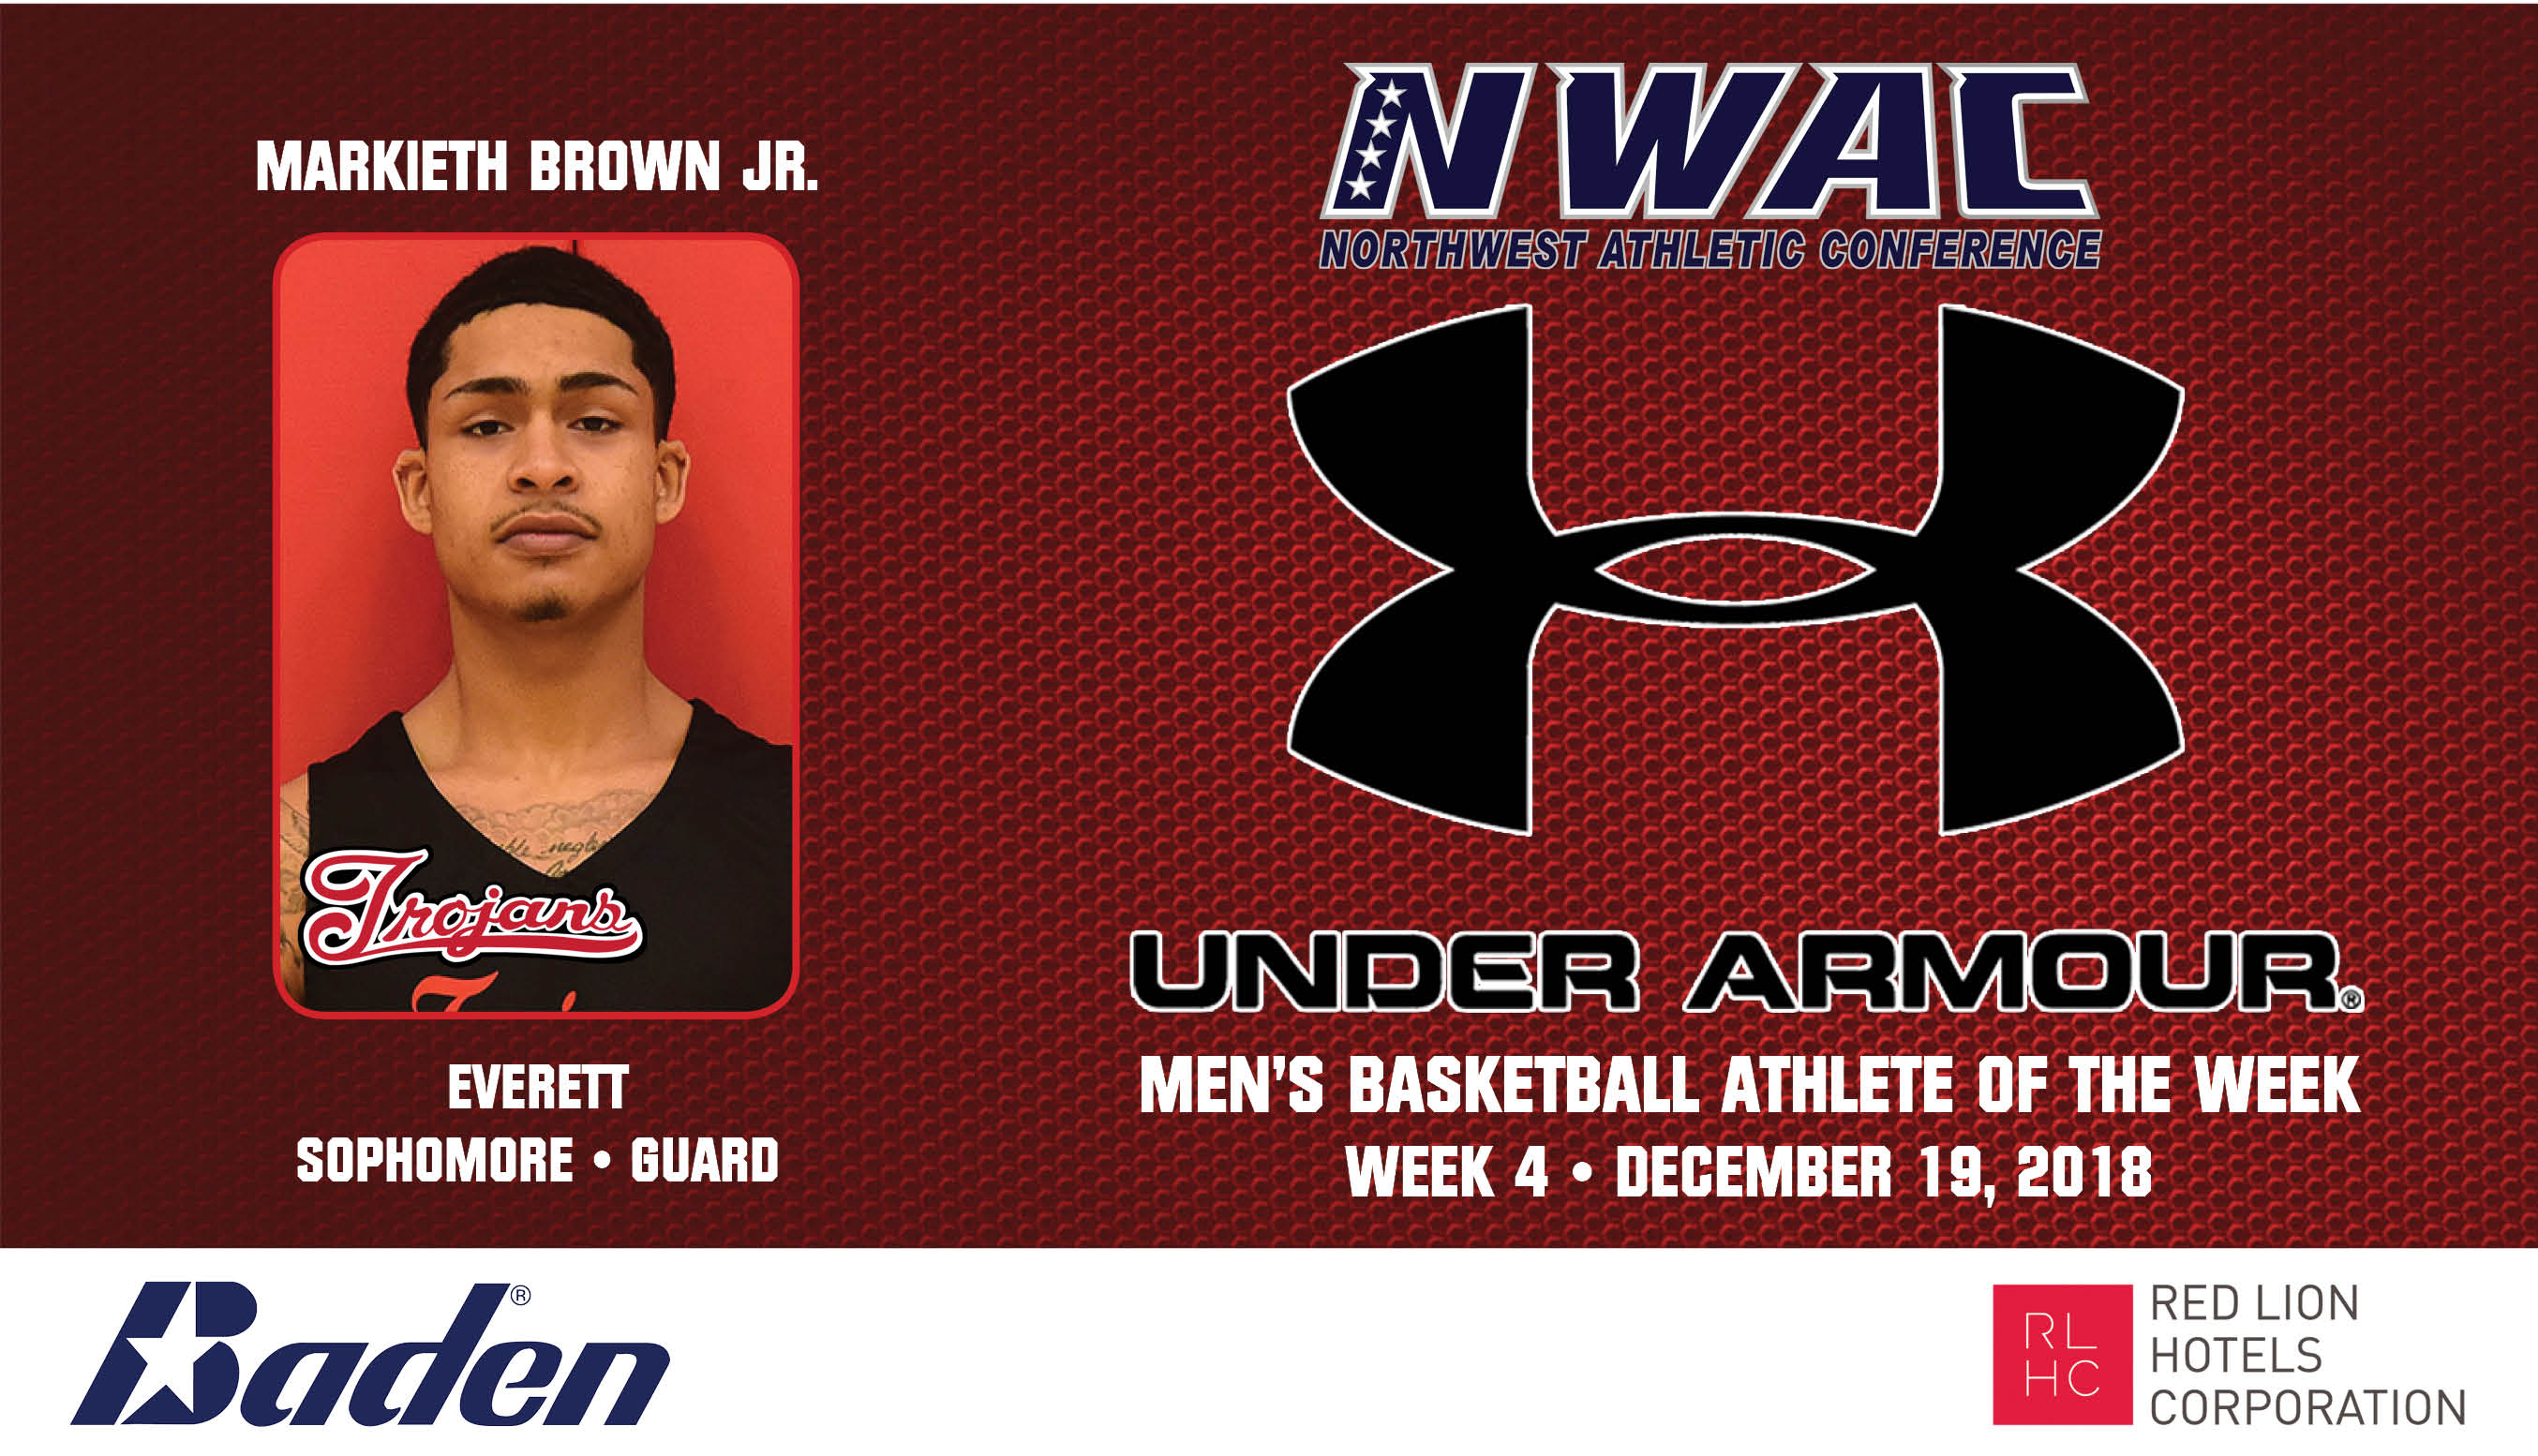 Markieth Brown Jr Under Armour photo